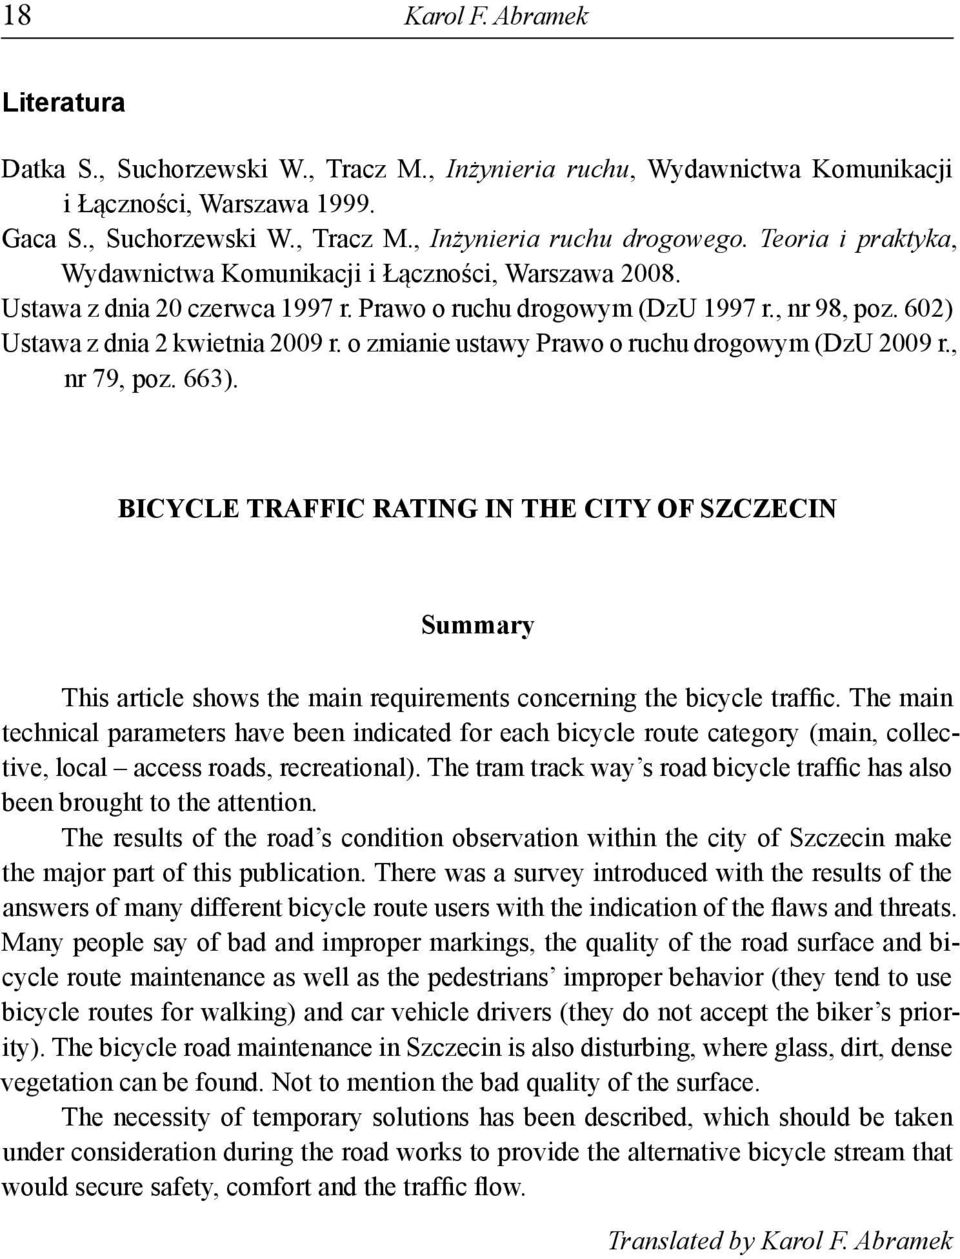 o zmianie ustawy Prawo o ruchu drogowym (DzU 2009 r., nr 79, poz. 663). BICYCLE TRAFFIC RATING IN THE CITY OF SZCZECIN Summary This article shows the main requirements concerning the bicycle traffic.